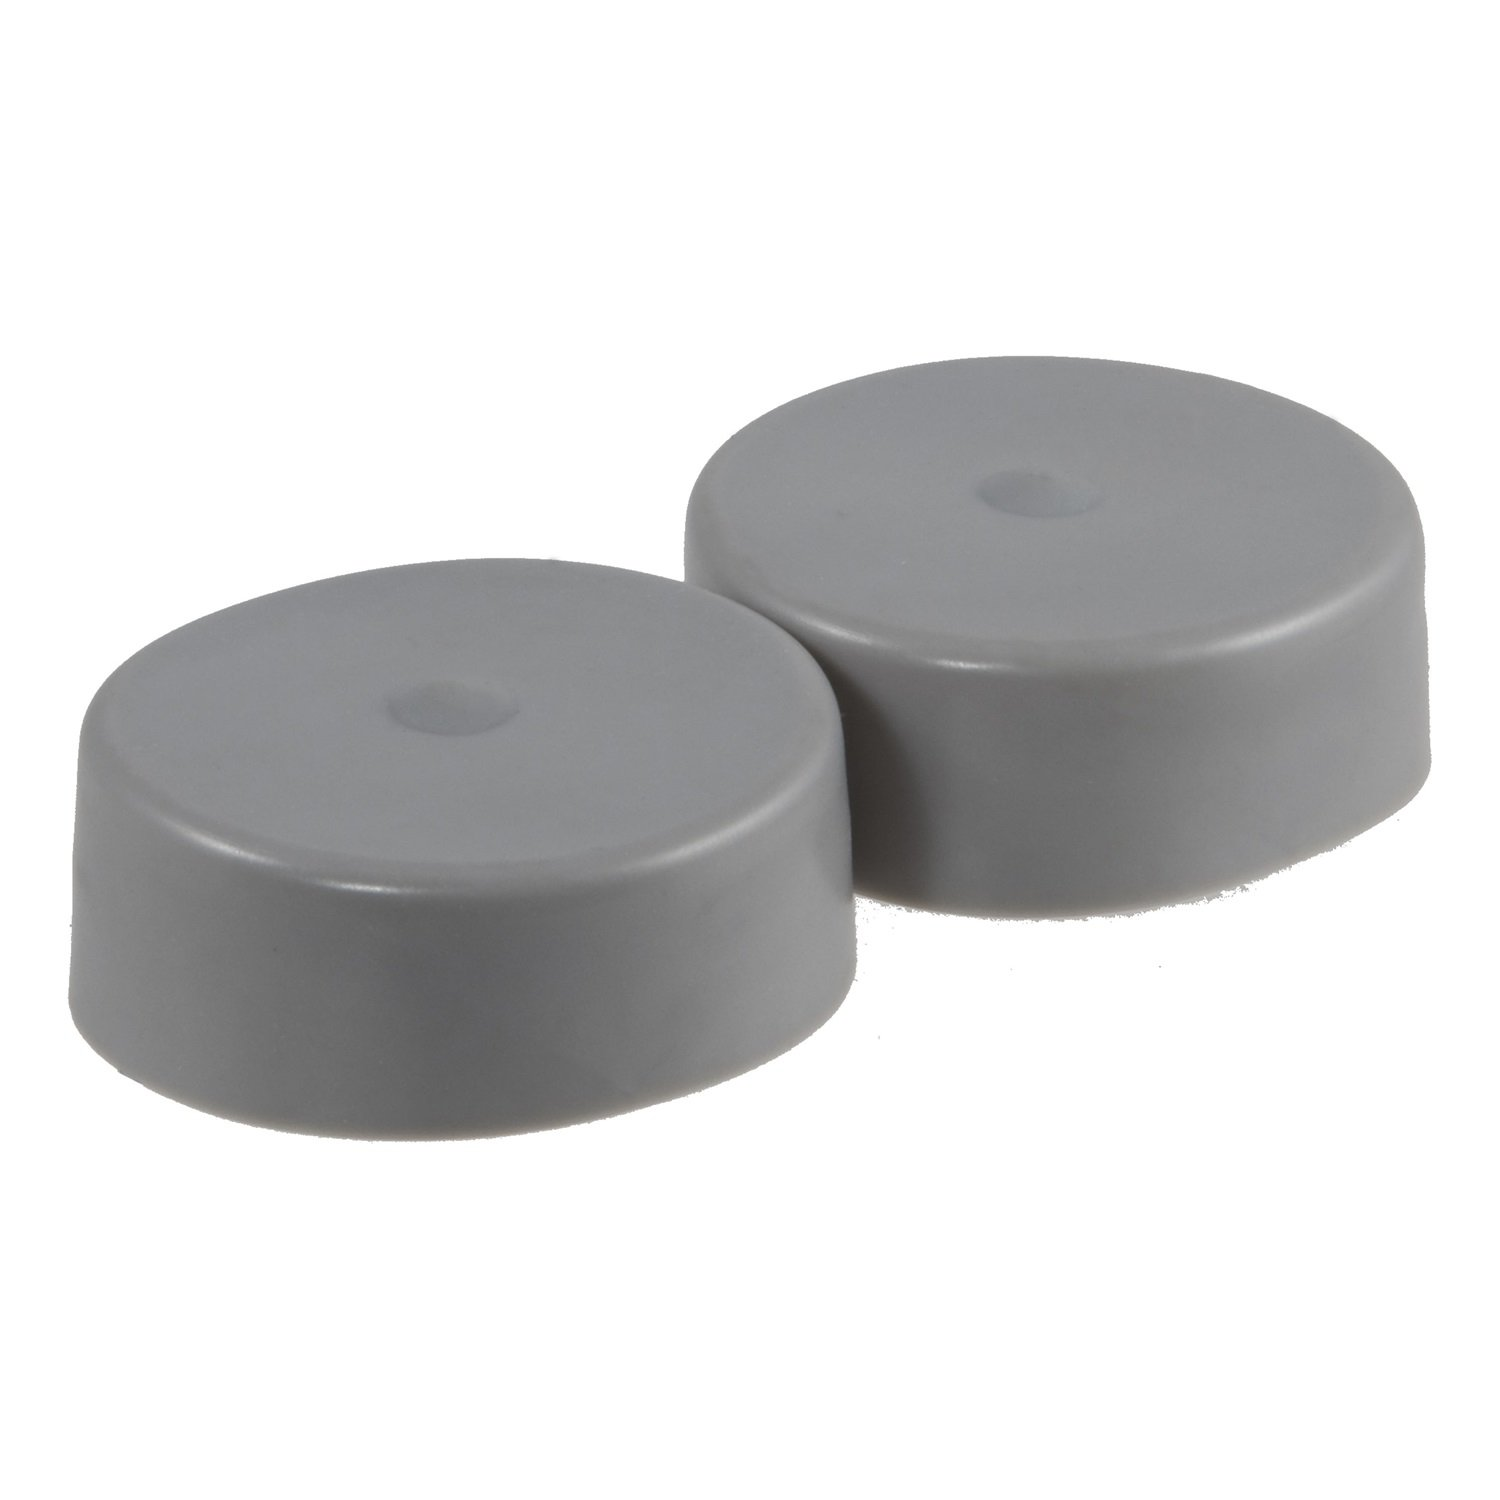 1 Pair CURT 23244 Bearing Protector Dust Covers for CURT #22244